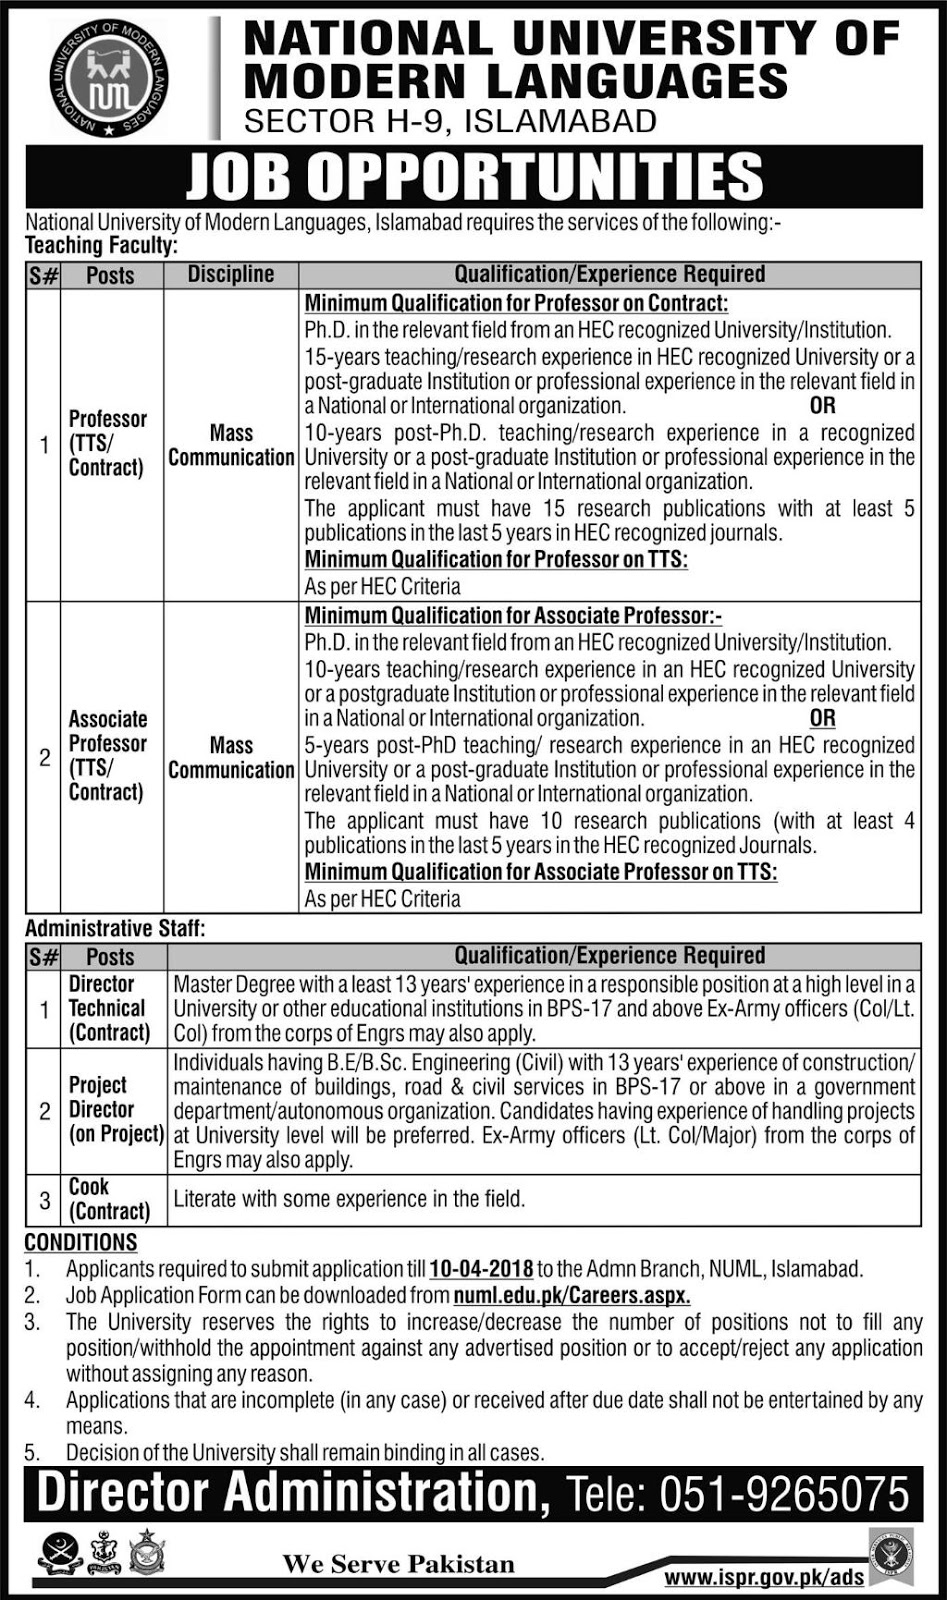 Jobs In NUML Islamabad 2018 National University Of Modern Languages